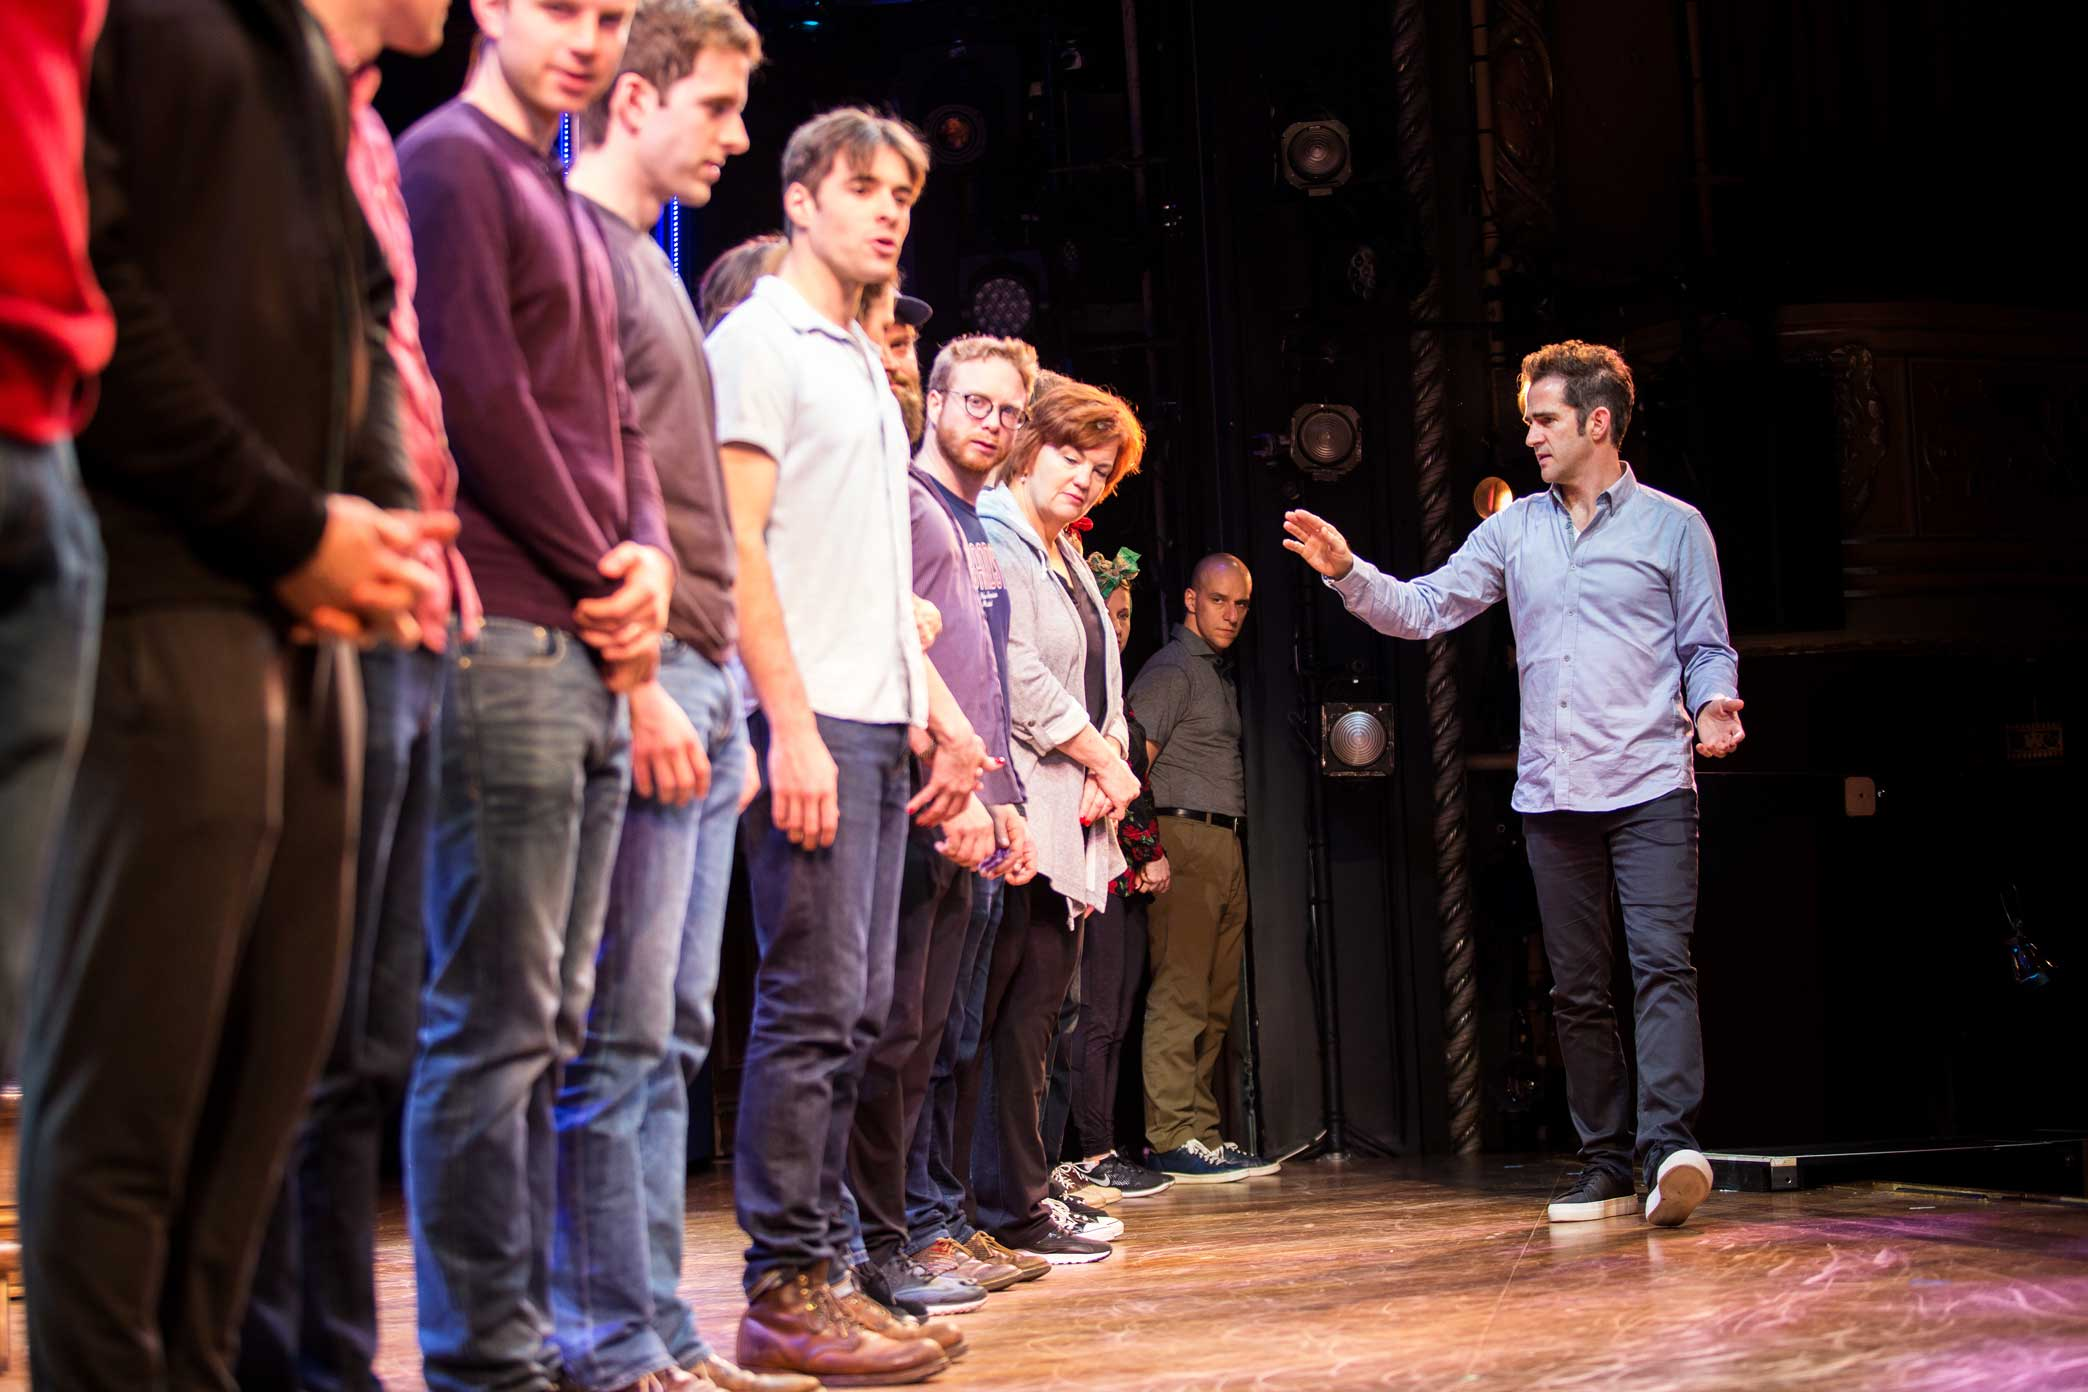 The cast lining up to rehearse the curtain call.  1:10 p.m.Mr. Blankenbuehler spent almost an hour fleshing out a fully choreographed curtain call for the first time. He repeatedly moved actors in and out of position and asked for shifts in lighting as they tried out their cues.